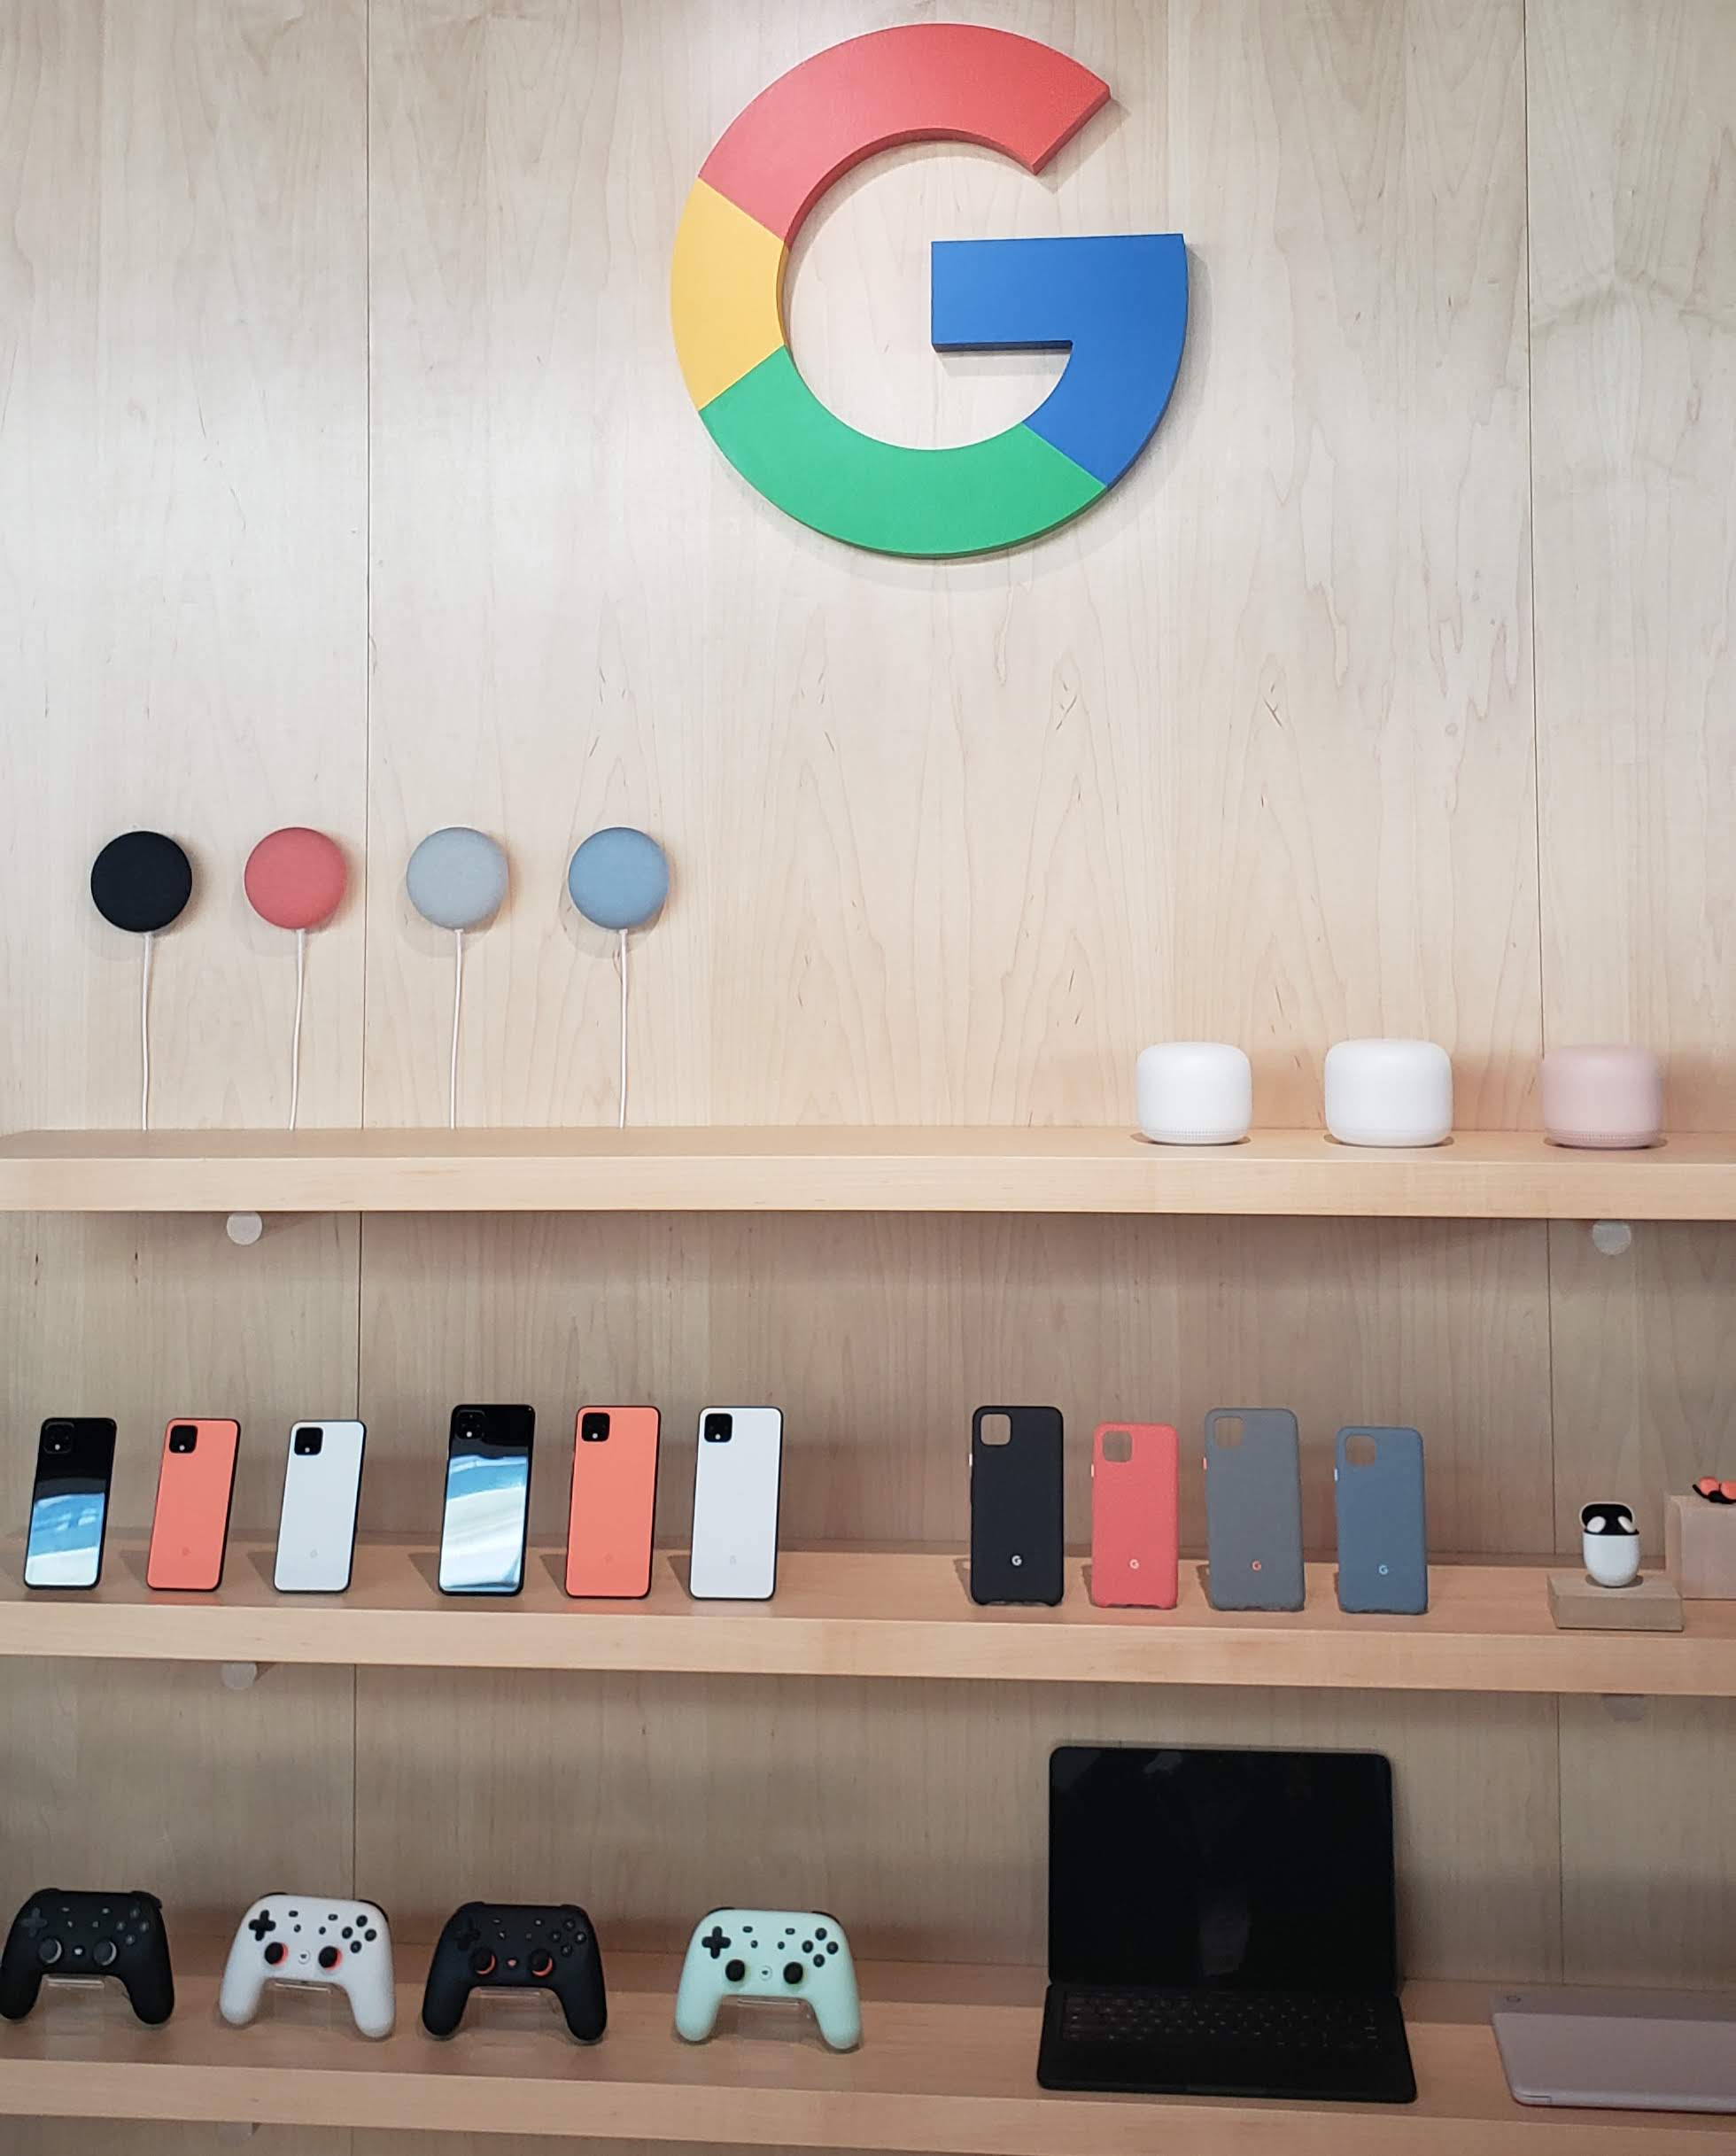 MadeByGoogle...Ready for the Workplace?